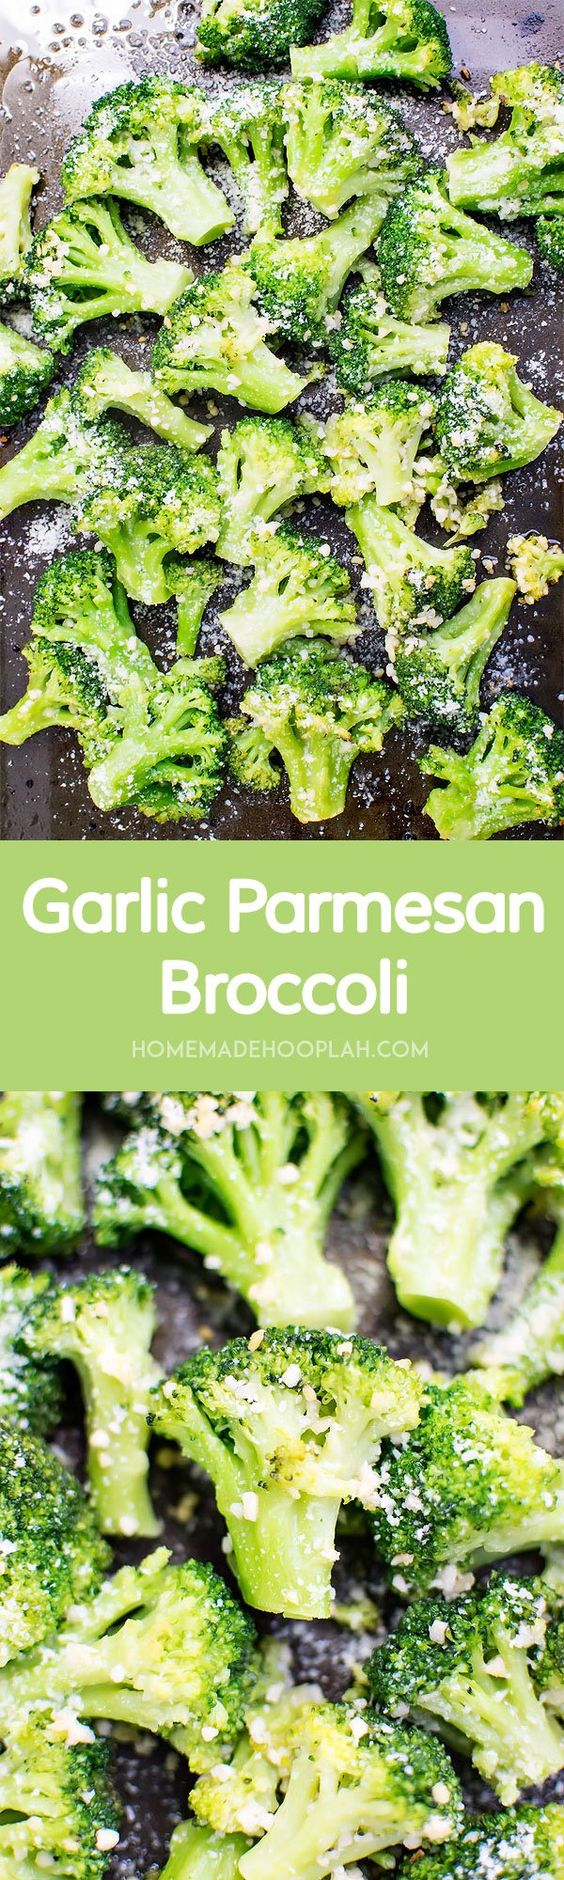 Garlic Parmesan Broccoli! The perfect side dish to any meal! Broccoli baked with olive oil and garlic then sprinkled with parmesan cheese. | HomemadeHooplah.com